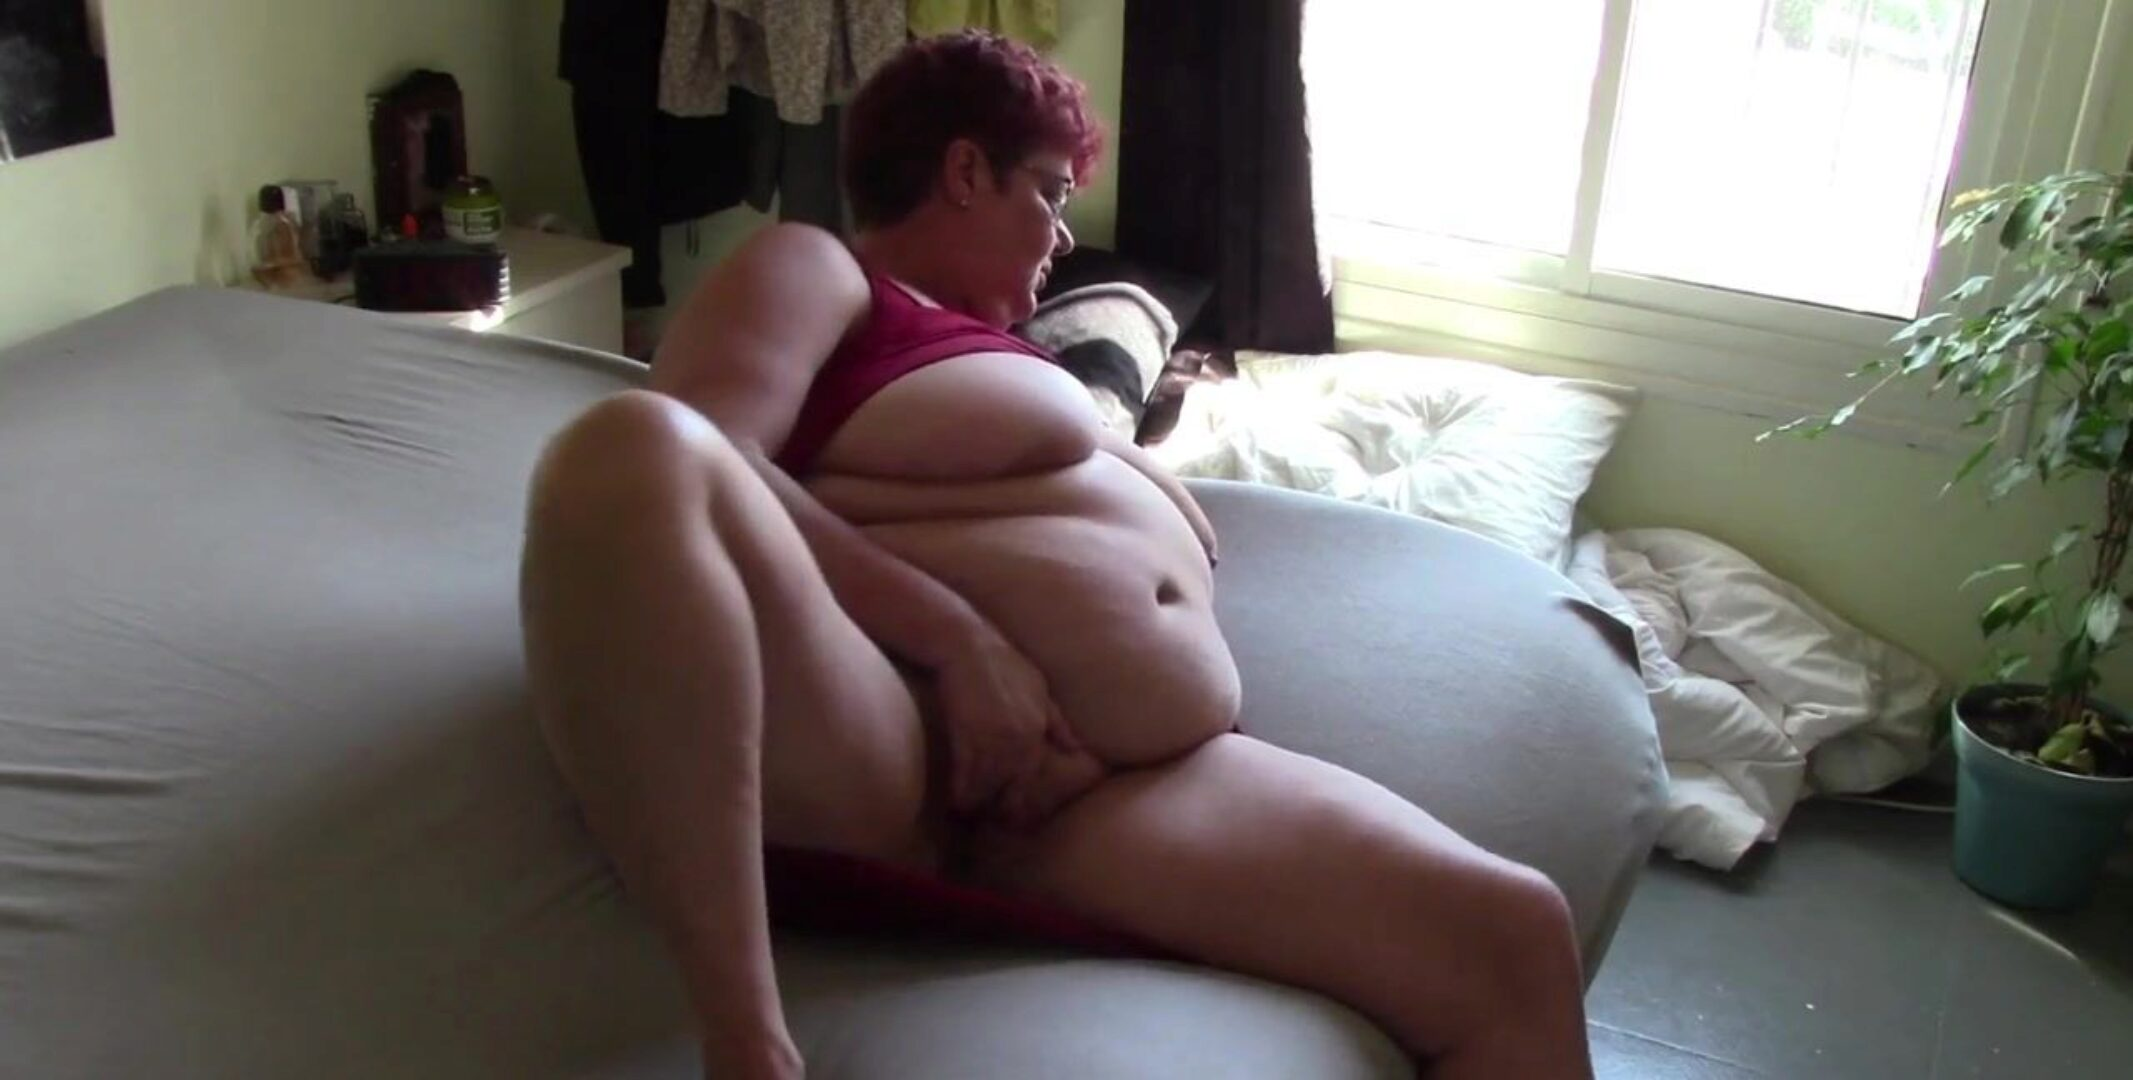 Stunning Big Tit BBW Mature Got Filled Up Creampie Stunning Big Tit big beautiful woman Mature Got Filled Up Creampie